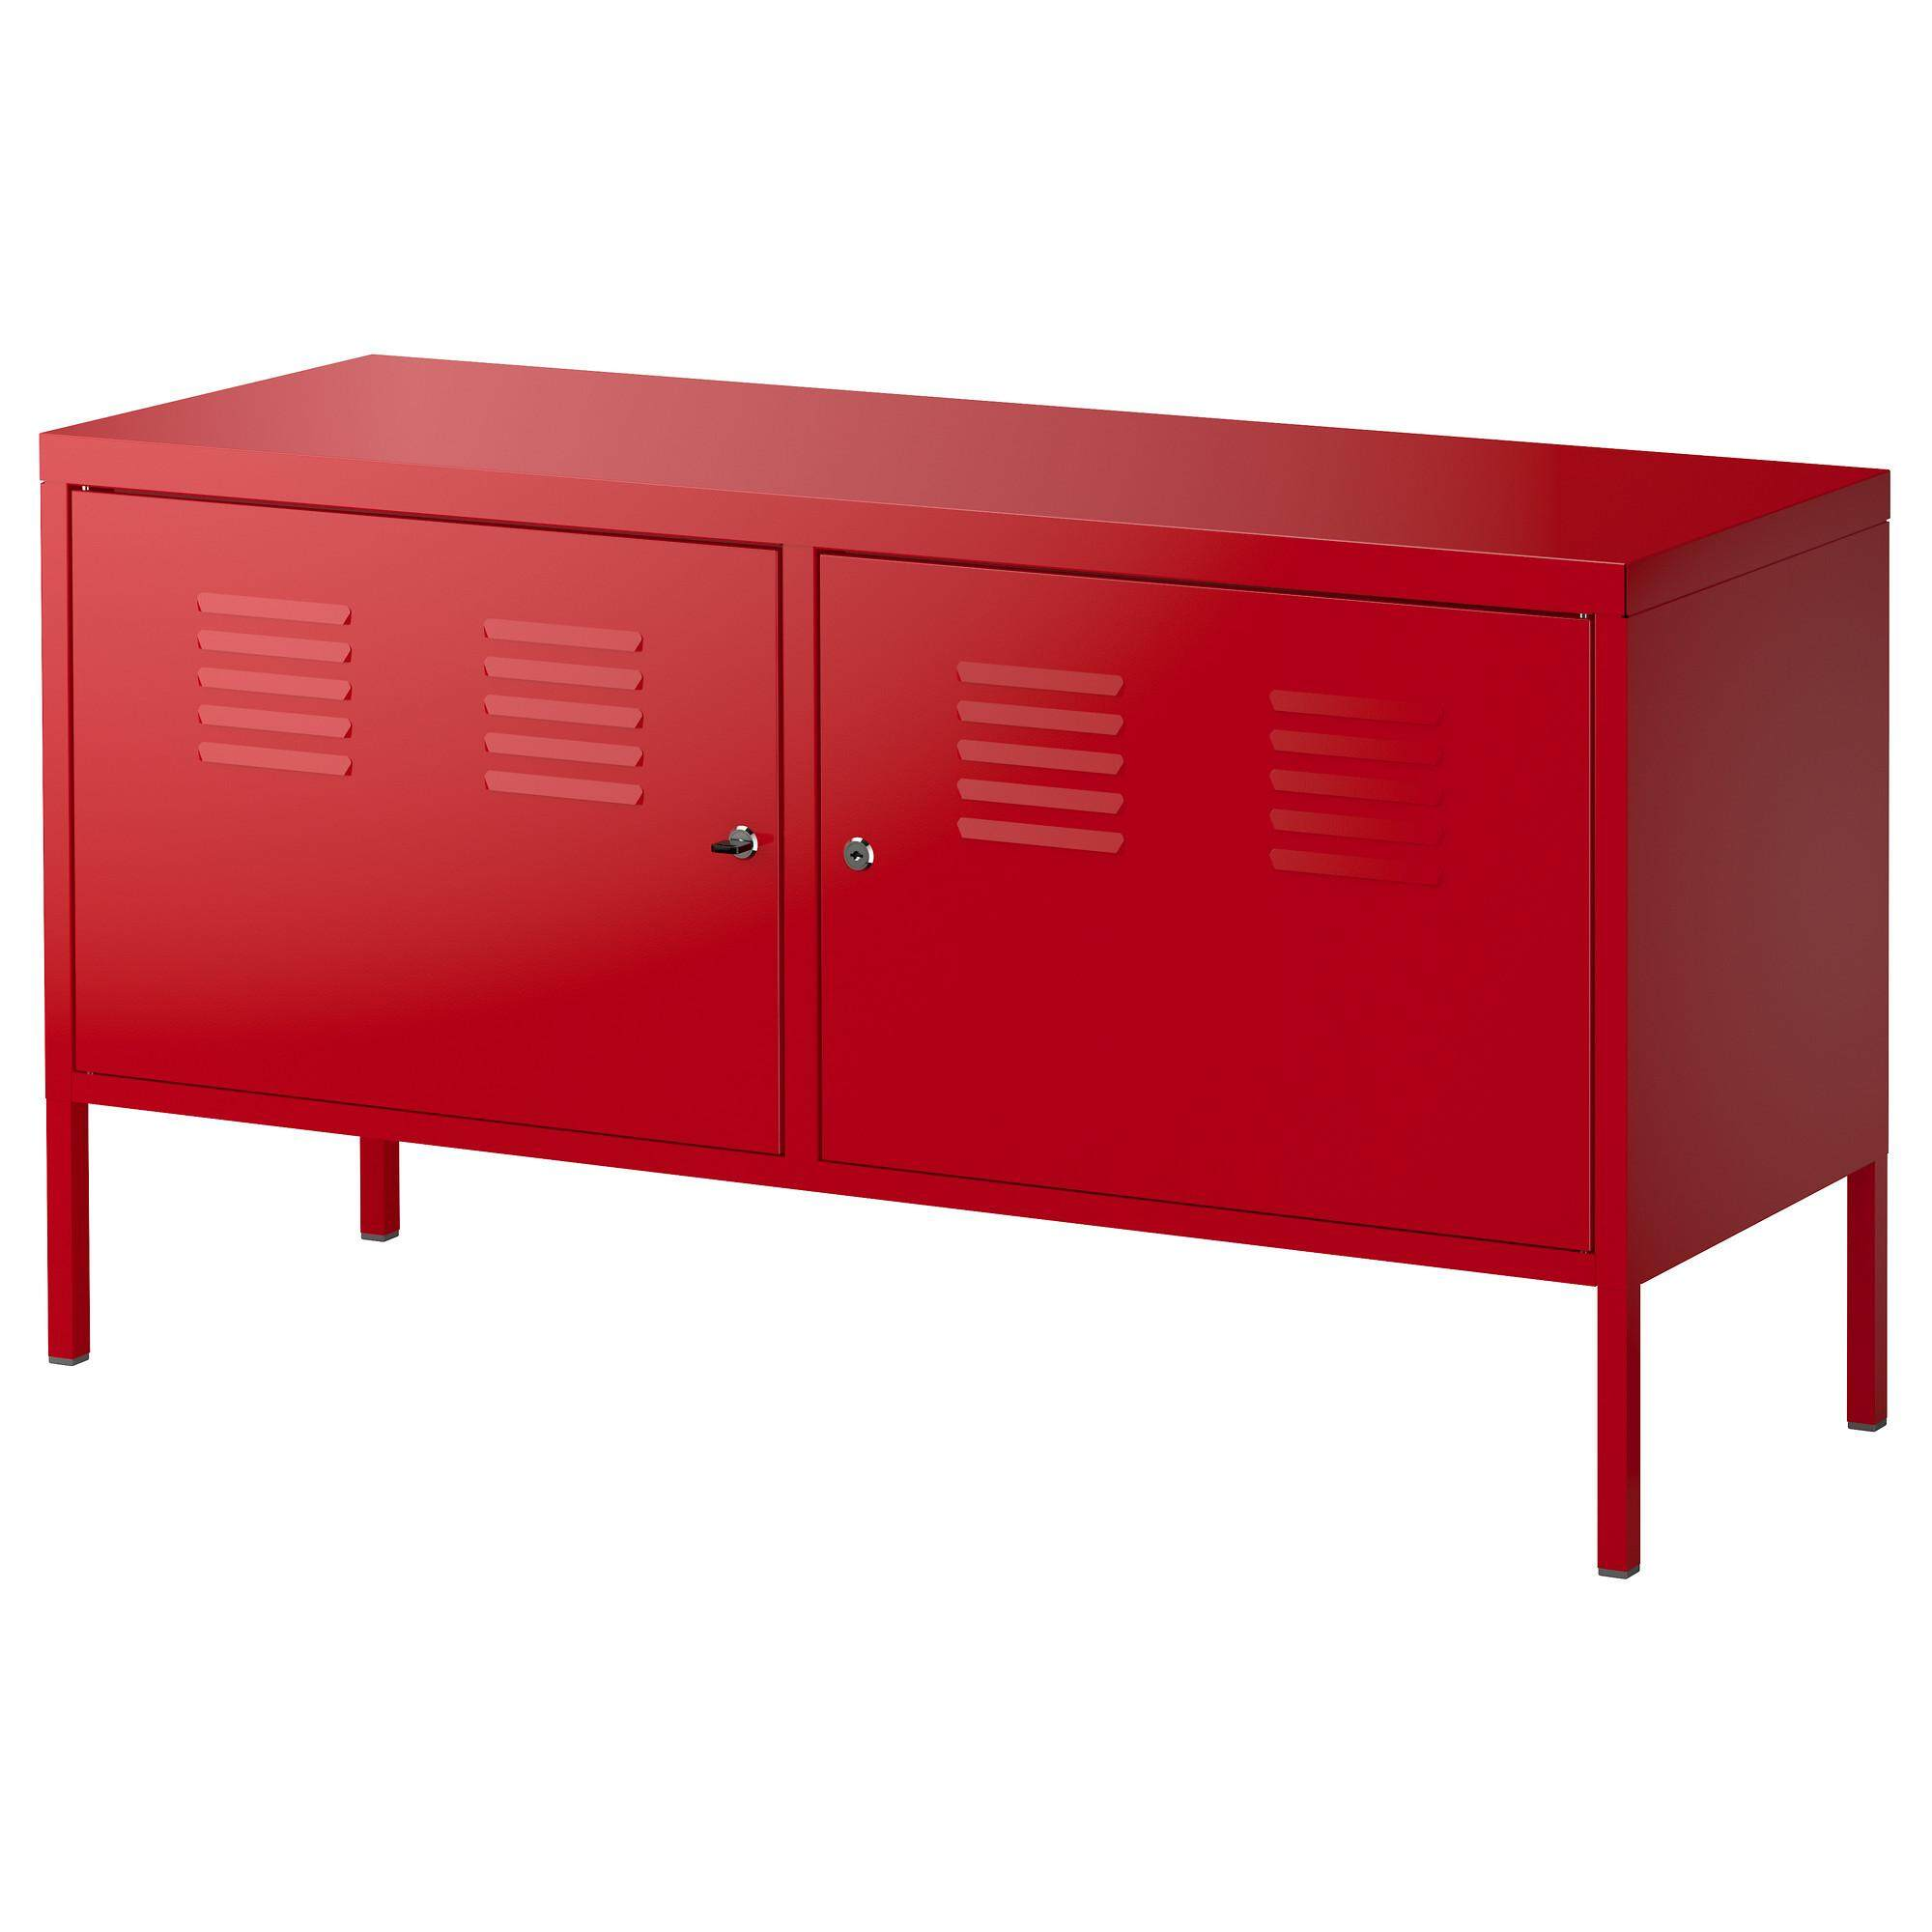 Ikea 201 683 43 ikea ps storage cabinet steel shelf red